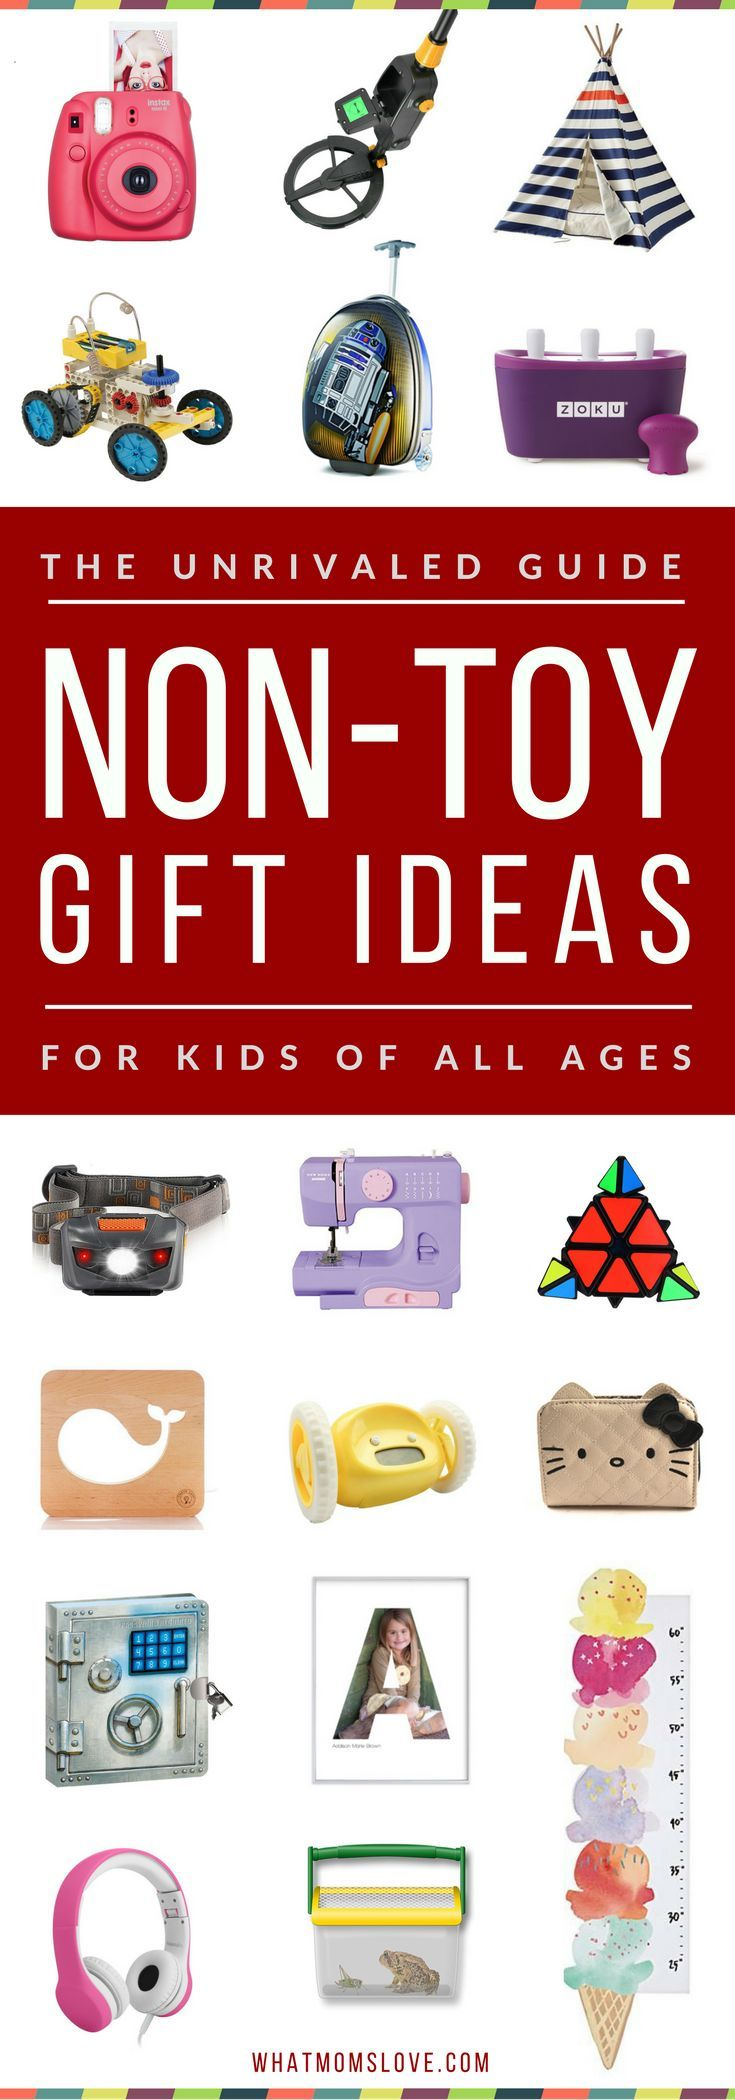 The Unrivaled Guide To Non-Toy Gifts. 200+ Presents For Kids Of ...